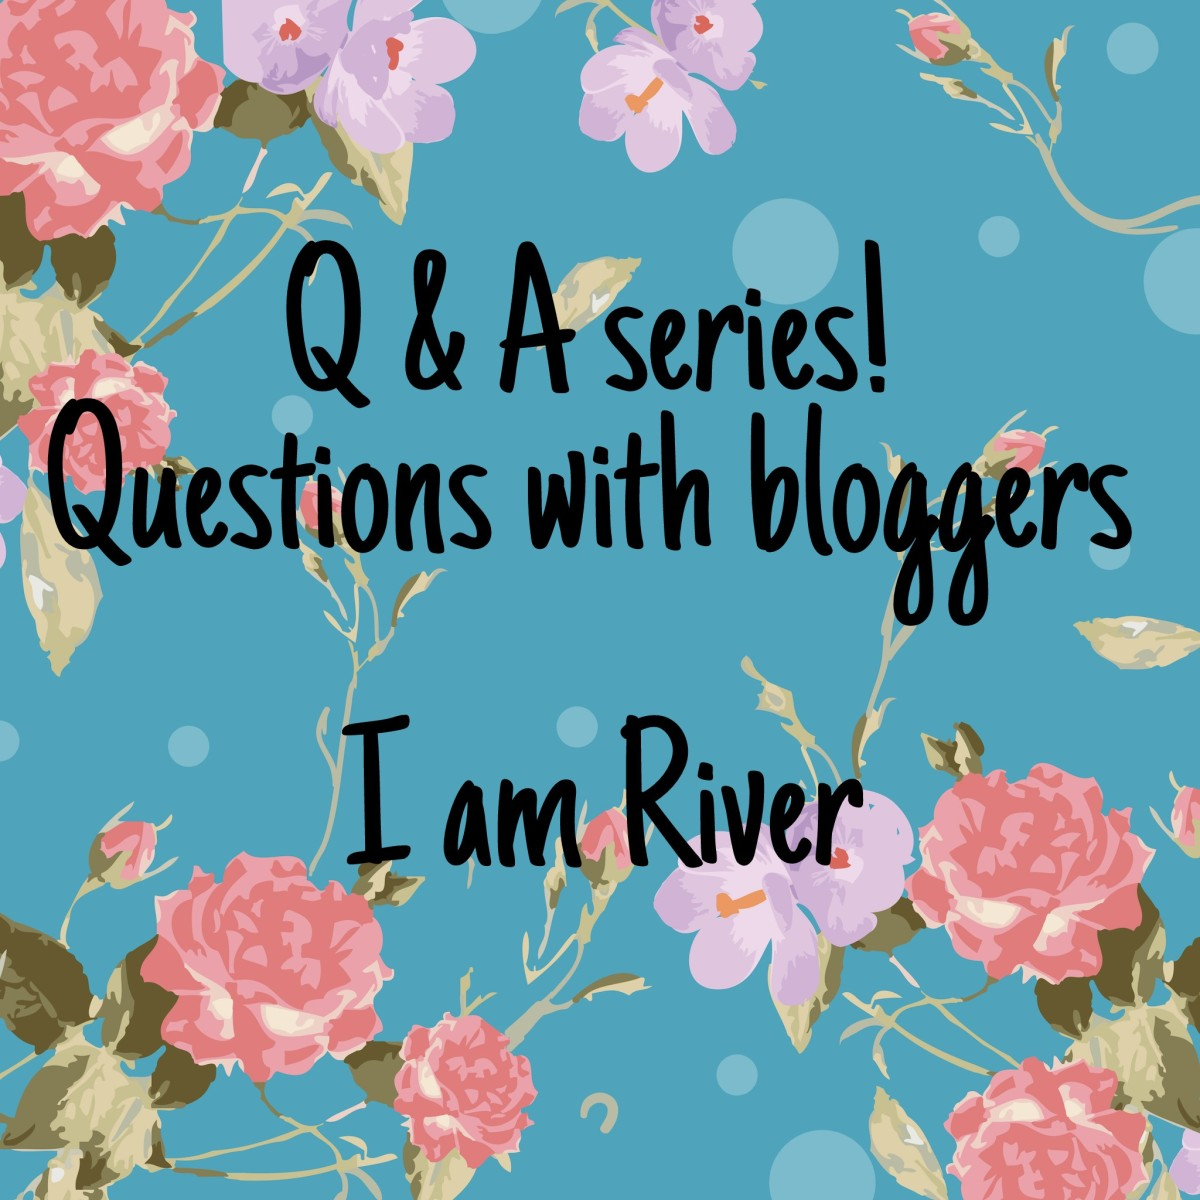 Q & A series - Questions with bloggers - I am River